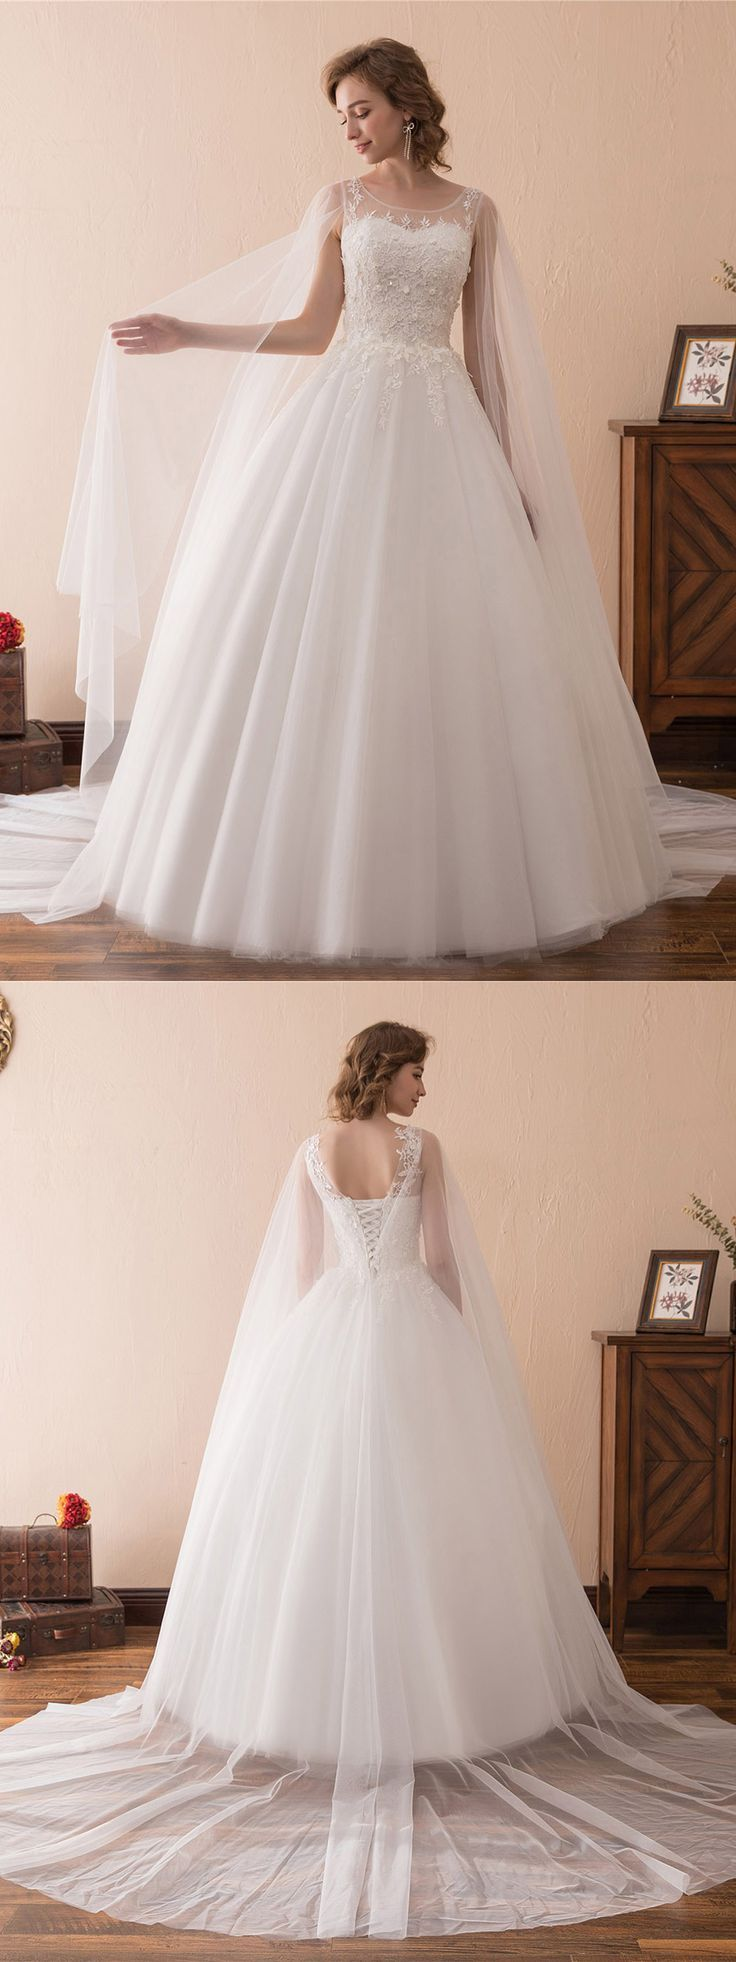 Simple off white wedding dresses  Simple Tulle Lace Ballroom Wedding Gowns With Cape Train CH